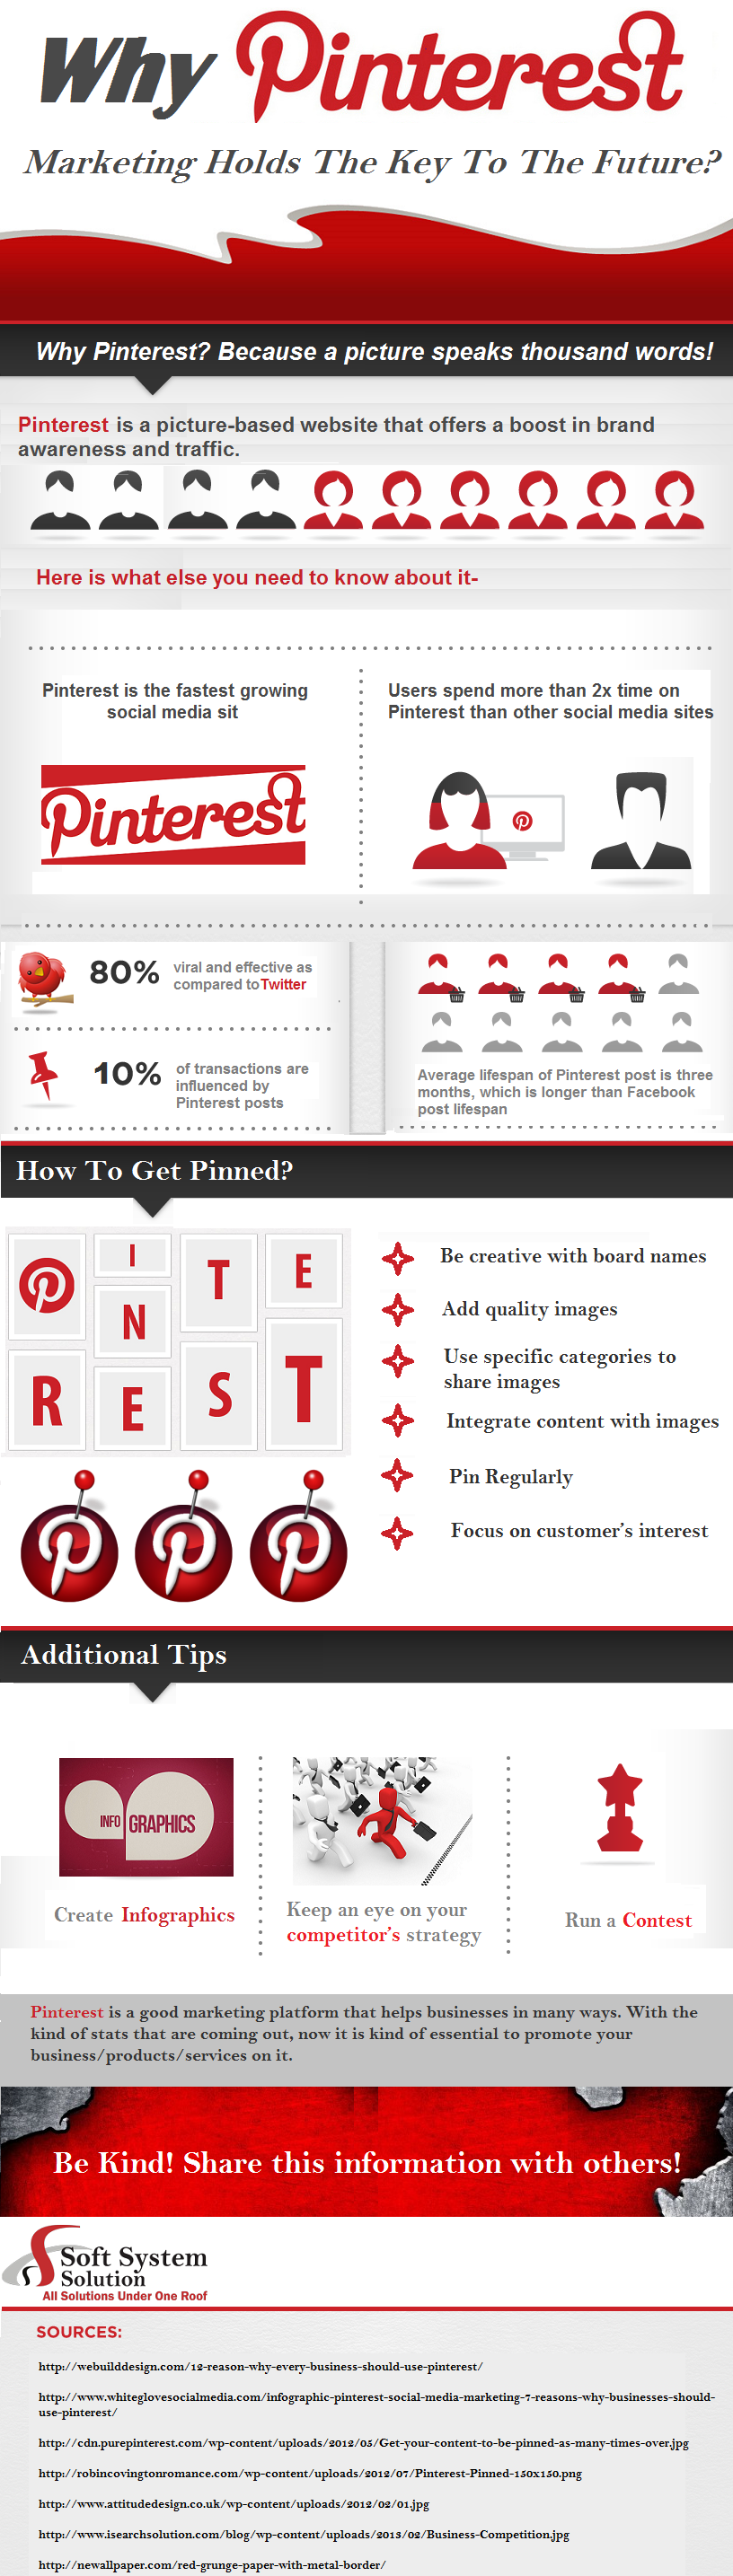 Why Pinterest Marketing Holds The Key To The Future